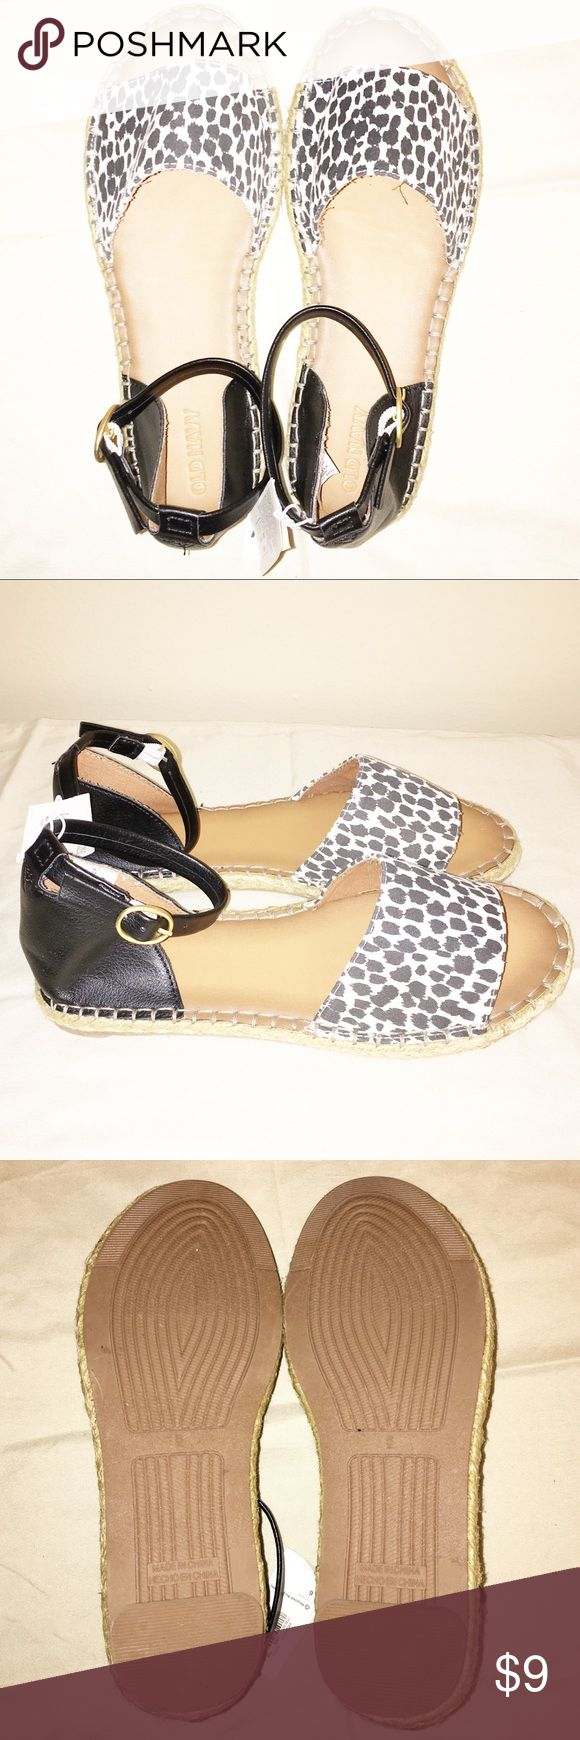 Old Navy NWT Espadrille Shoes, Size 6 NWT Old Navy Espadrille Buckle Shoes, Size 6. Animal print/Black. Old Navy Shoes Espadrilles